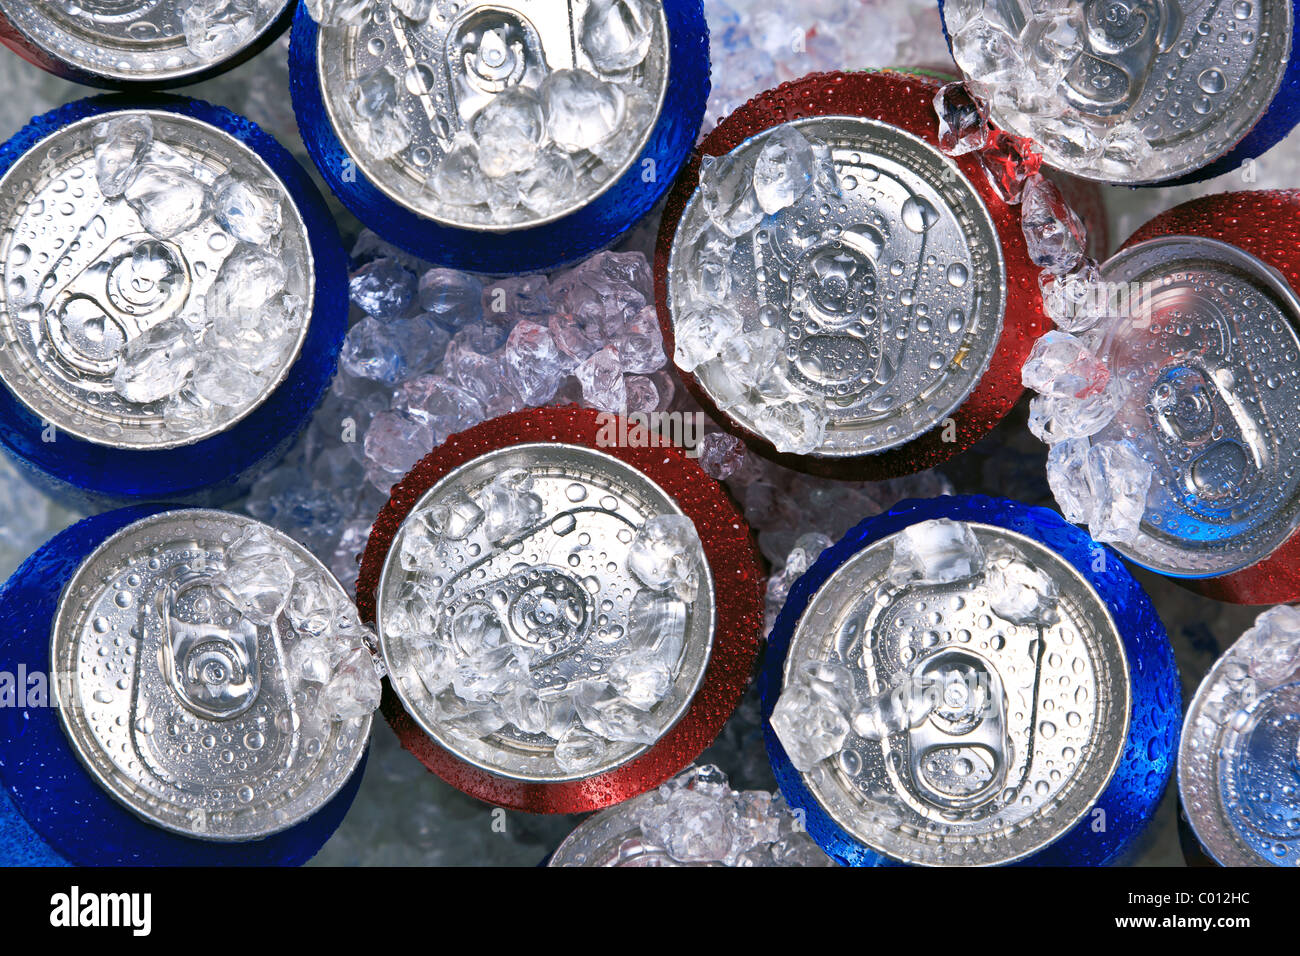 Photo of cans of drink on crushed ice. - Stock Image